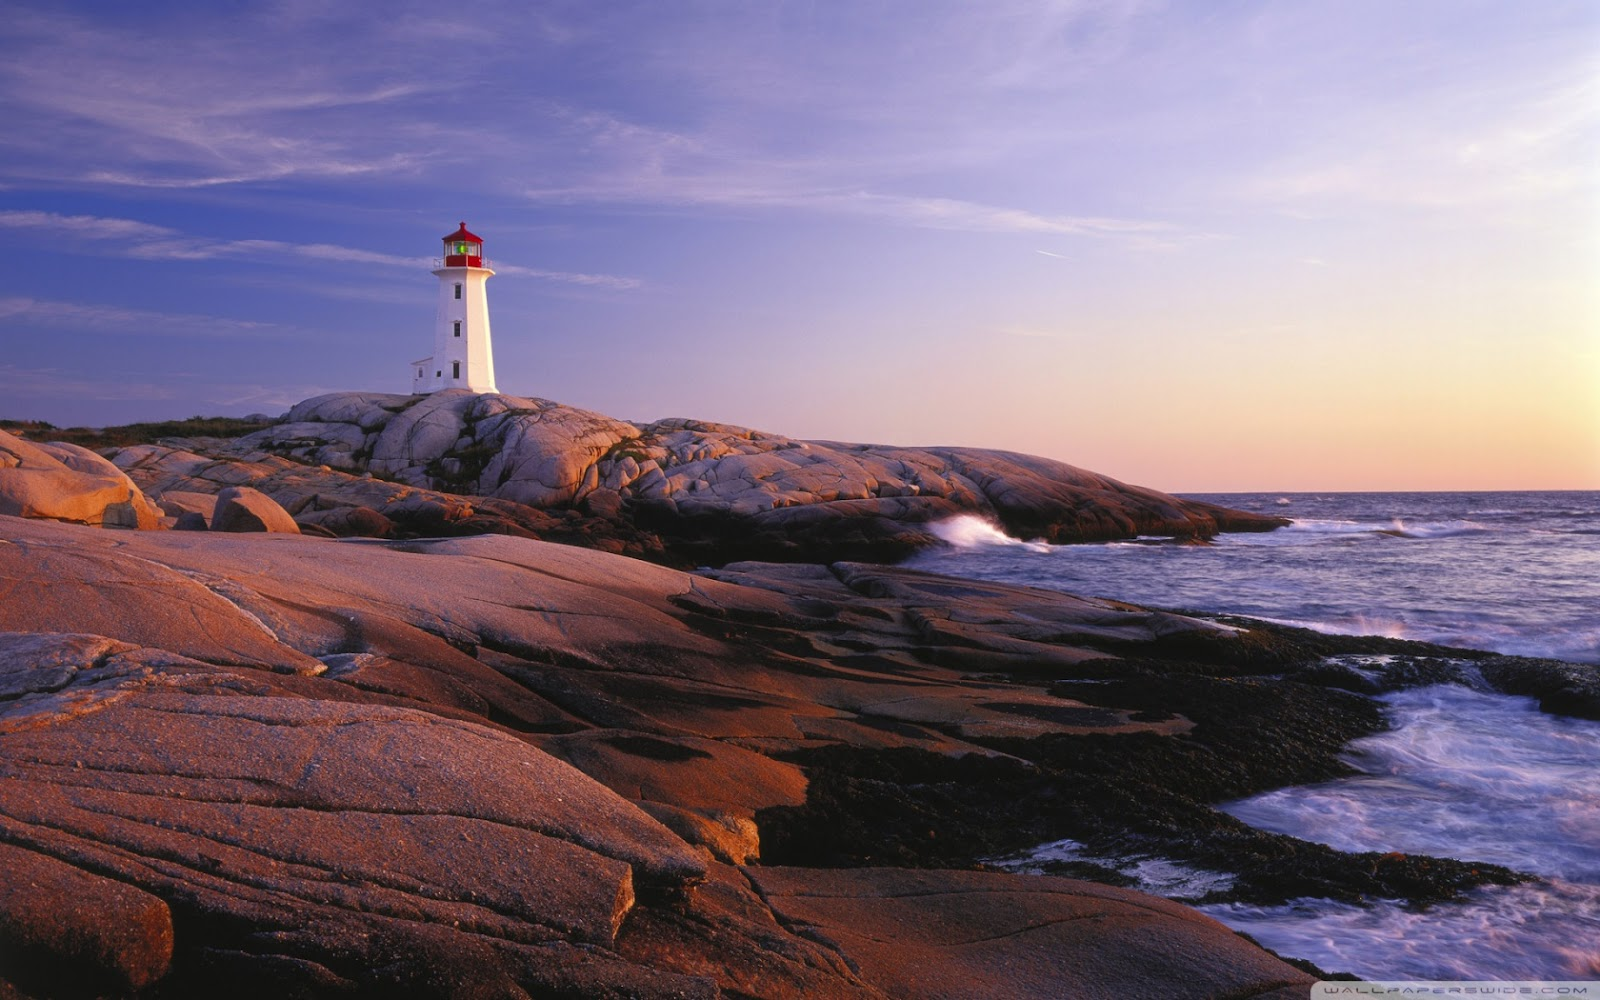 http://2.bp.blogspot.com/-OMUycTKxo7M/UFVfnh38kVI/AAAAAAAAC4w/1qZjV3uiMOA/s1600/peggys_point_lighthouse_peggys_cove_nova_scotia-wallpaper-1680x1050.jpg